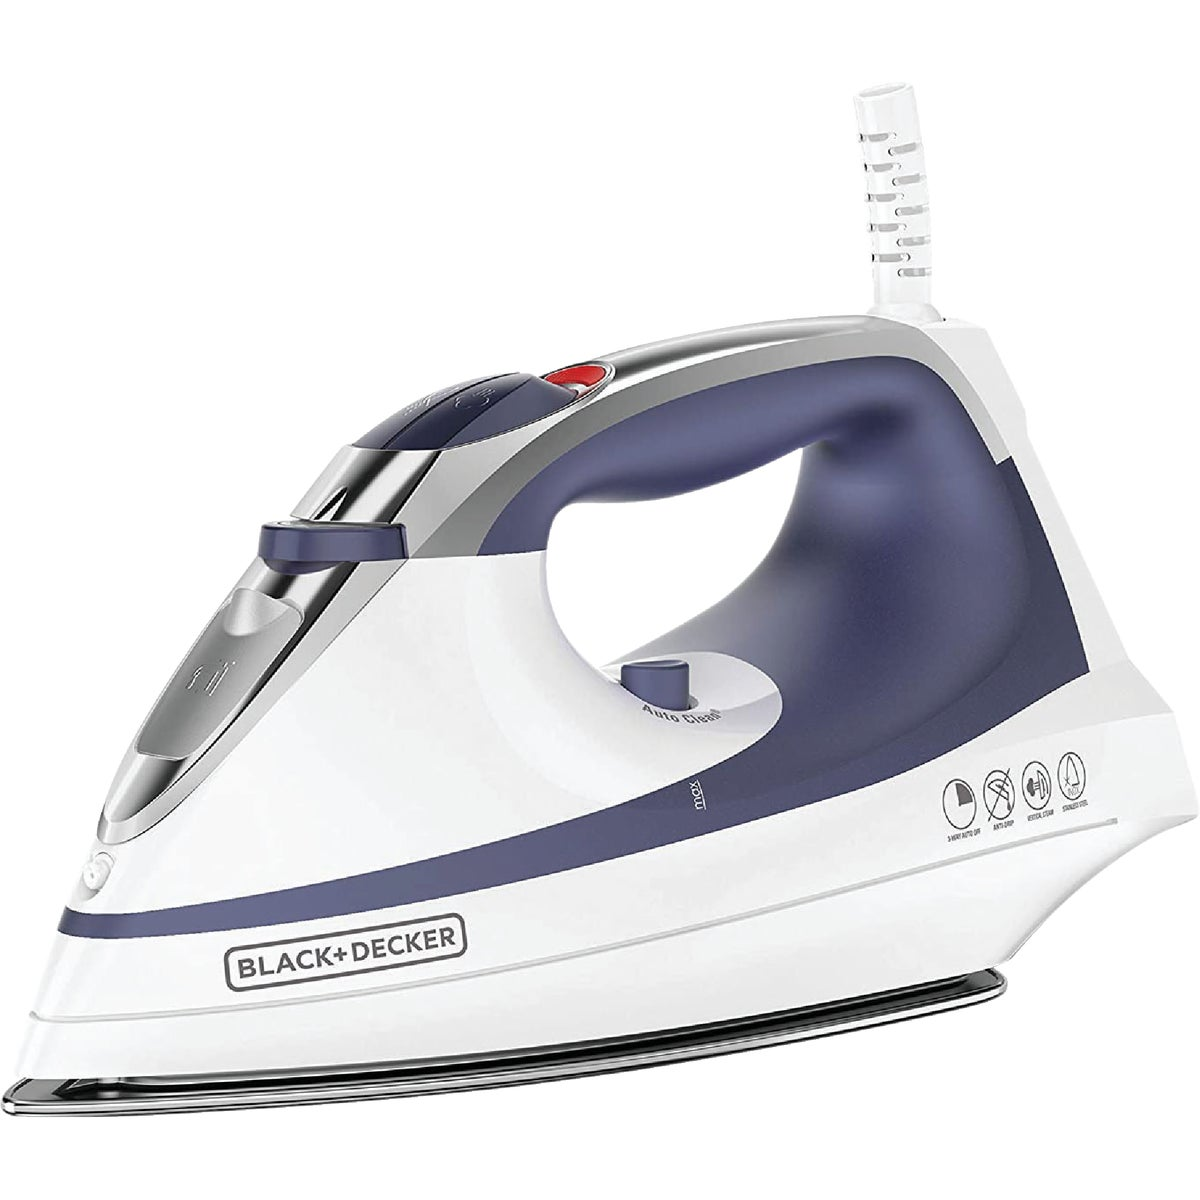 STEAM IRON - IR1070S-3 by Applia      Spectrum